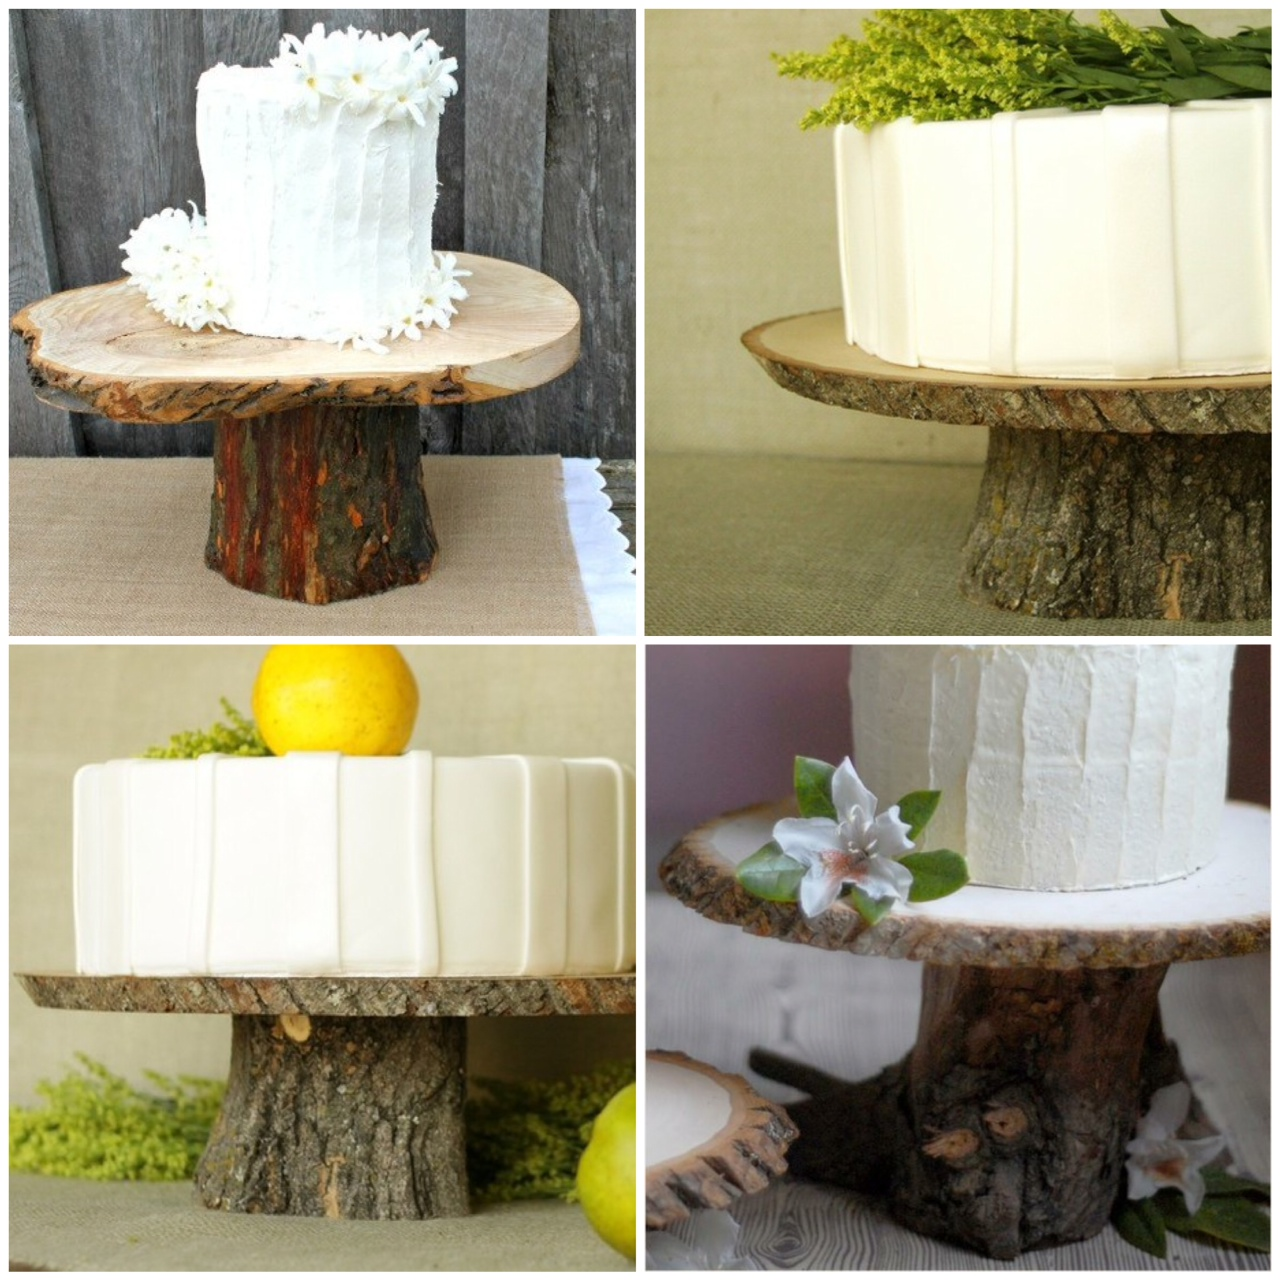 wedding cake tree stump stand tree stump cake stand archives glitter inc glitter inc 26707